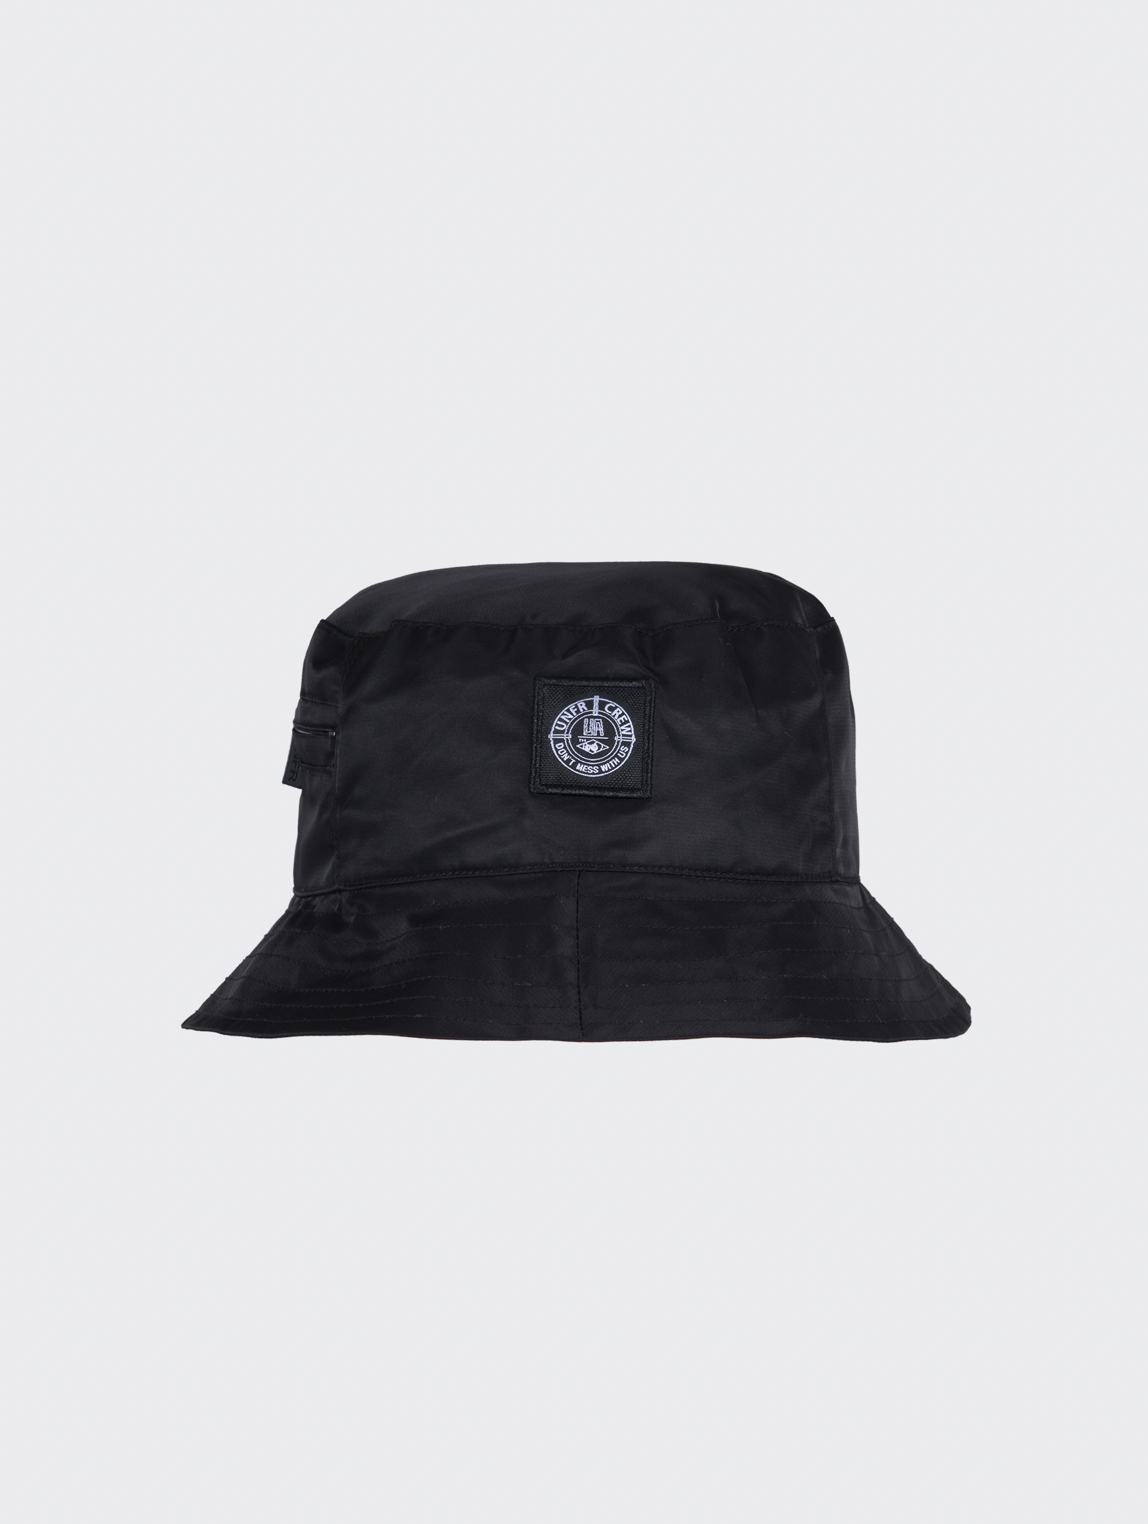 DMWU Patch Bucket Hat Black